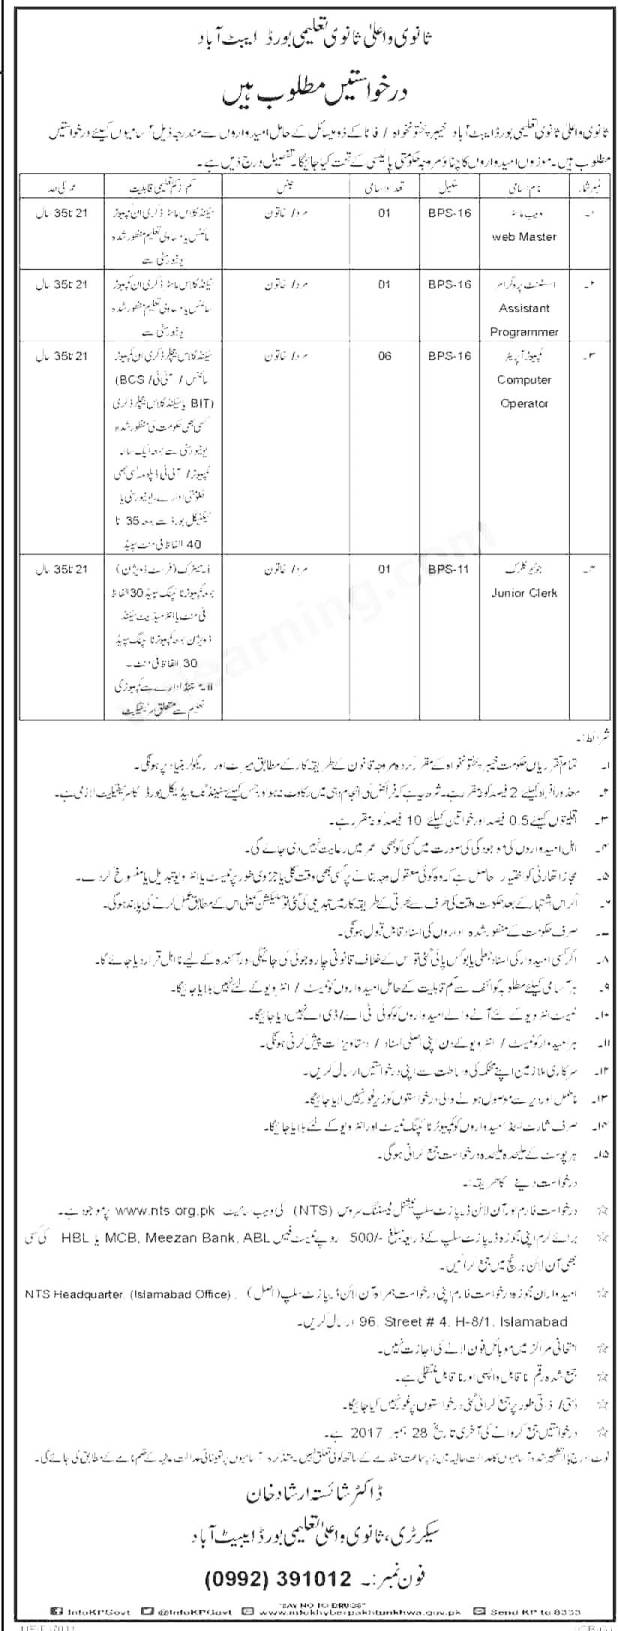 Board of Intermediate and Secondary Education BISE Abbottabad Jobs 2017 Application Form Merit List NTS Test Roll Number Slips Answer Key Result